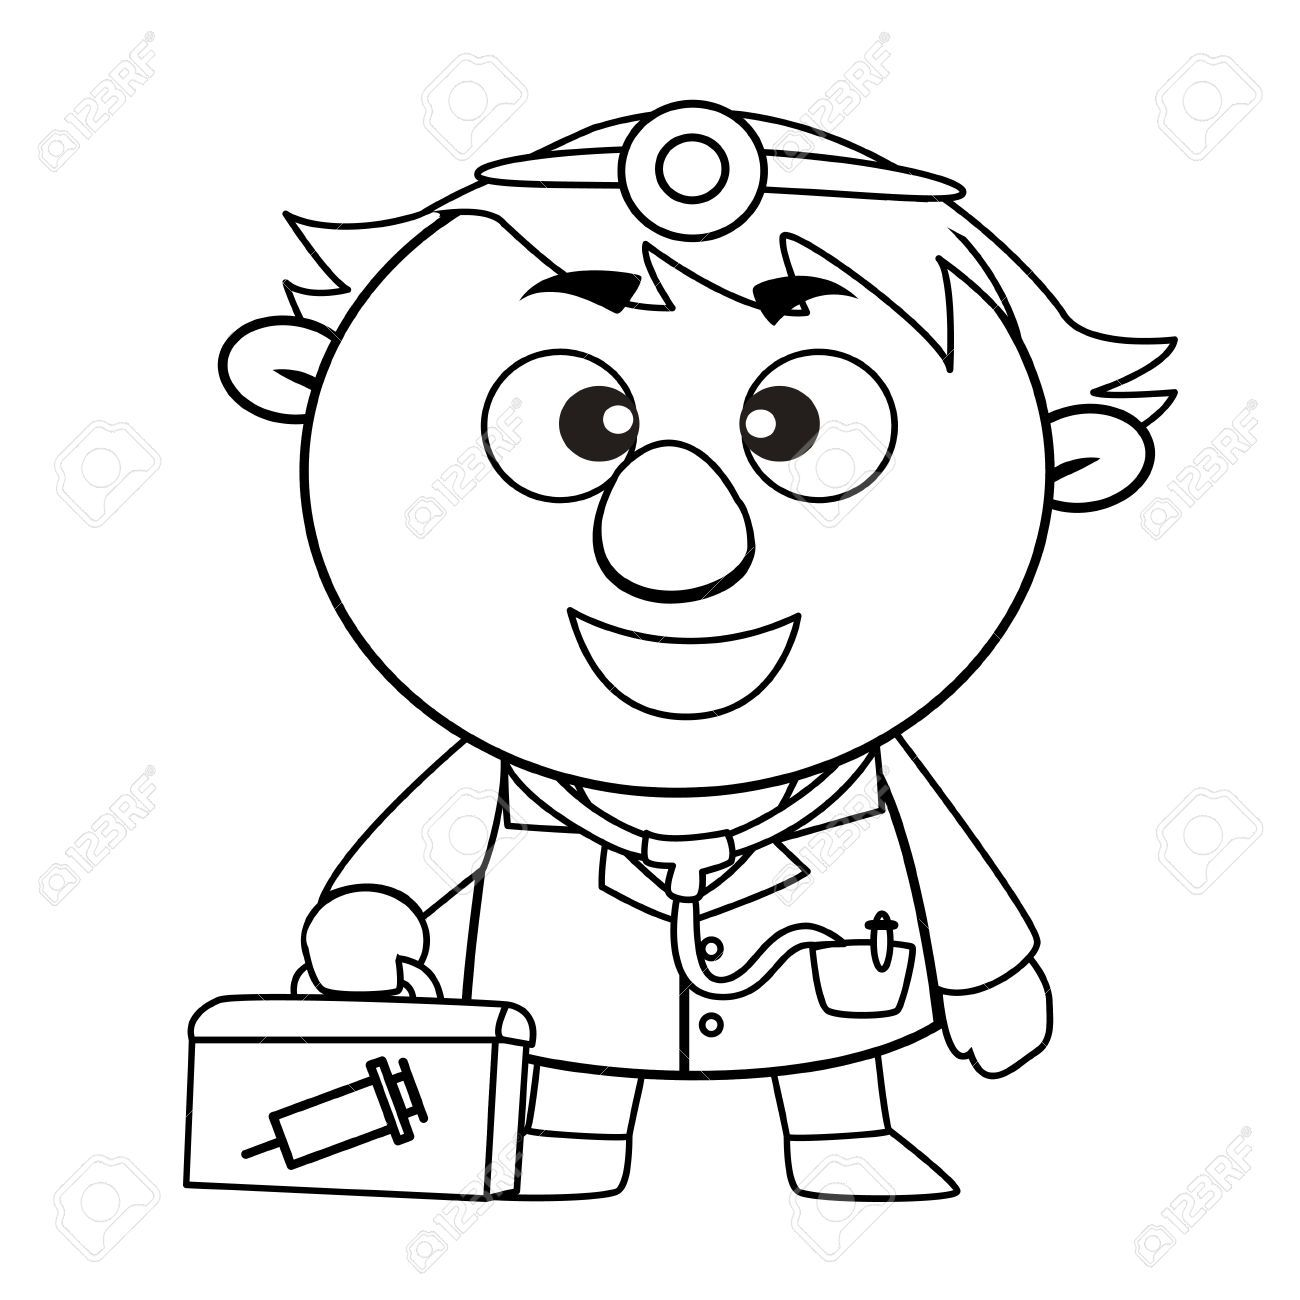 Clipart doctor black and white 4 » Clipart Portal.